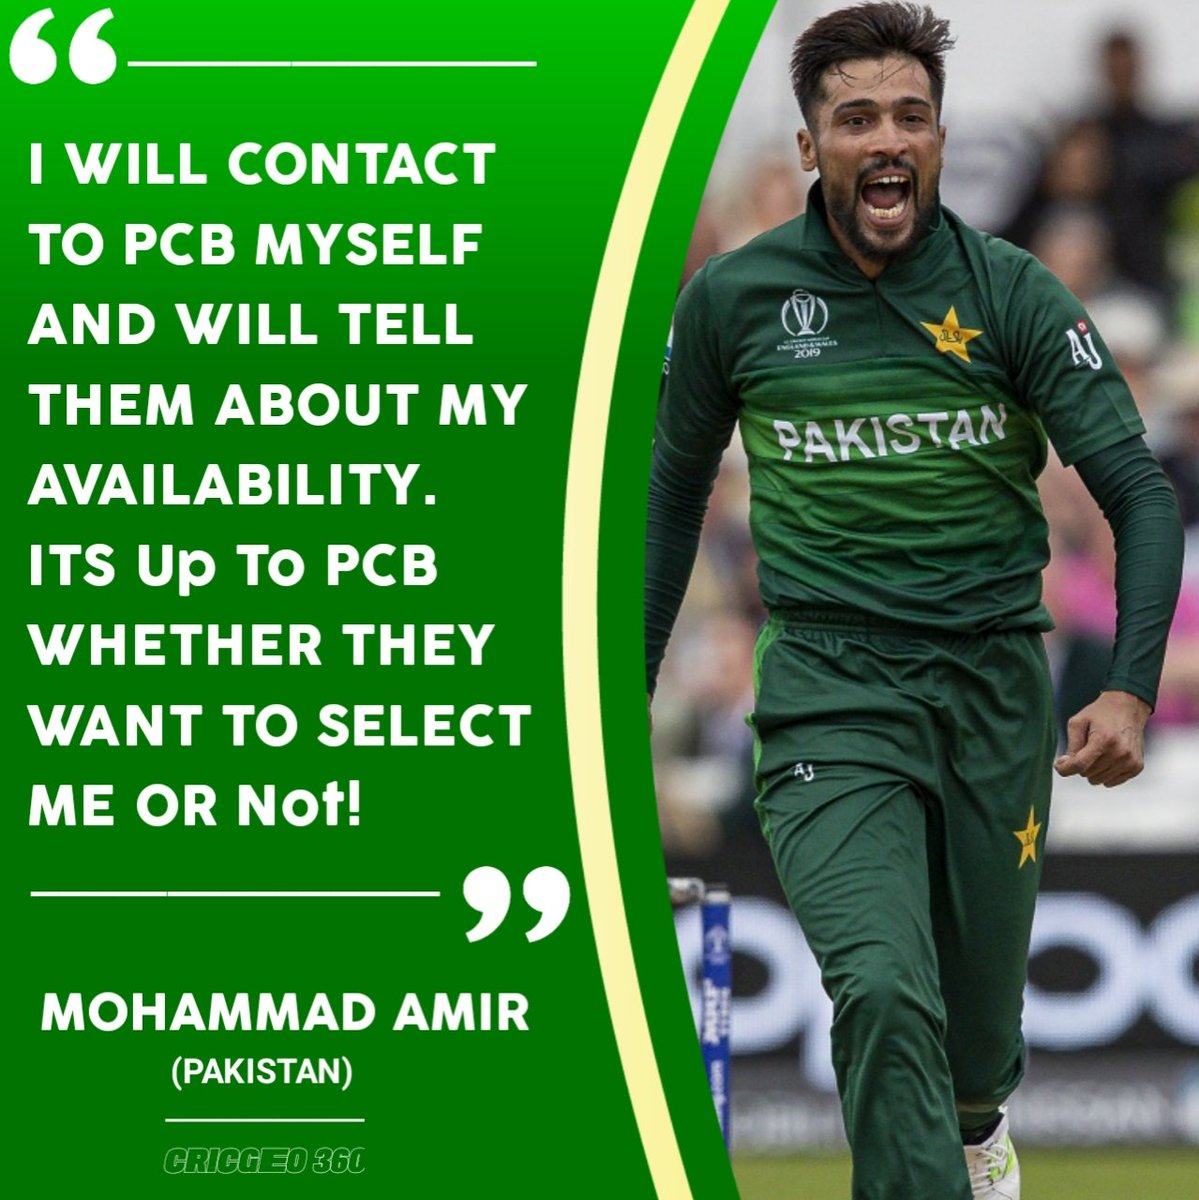 Big #BreakingNews! Mohammad Amir takes U-turn and wants to continue his international cricket career by contacting PCB! #MohammadAmir #amir  #PCB #Pakistani #Cricket #CricGeo360